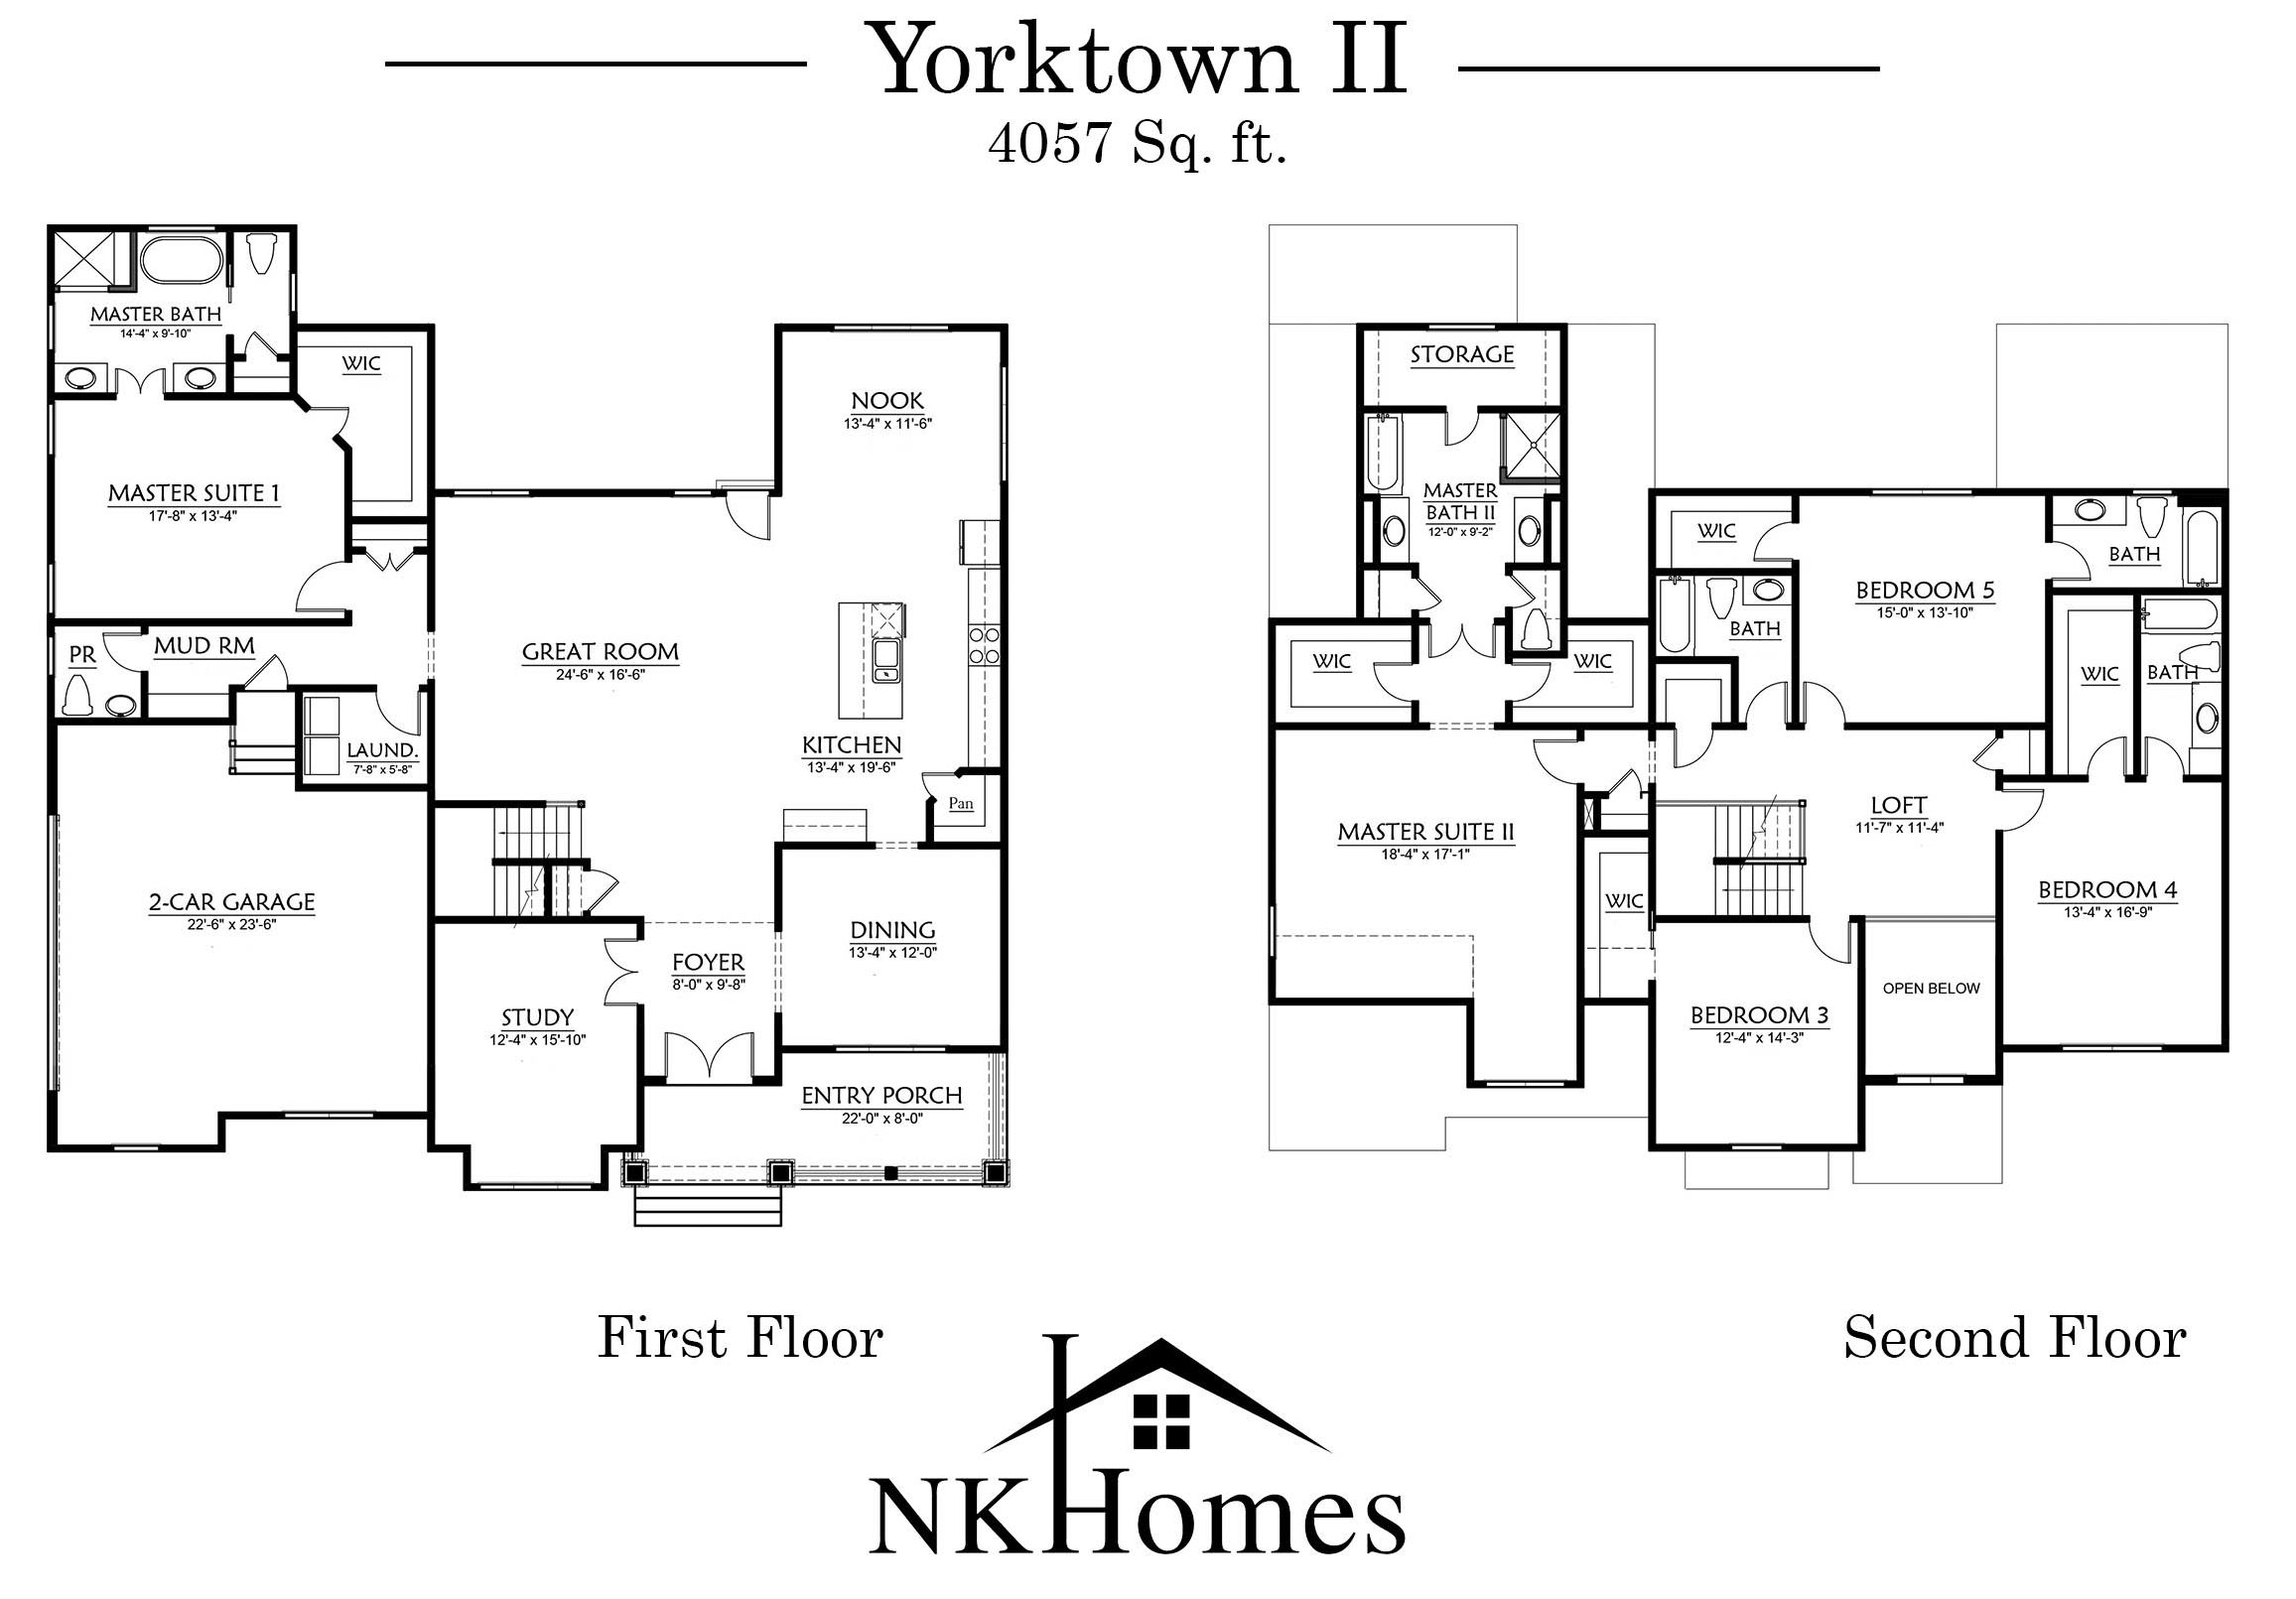 Yorktown 2 Floor Plan - NK Homes